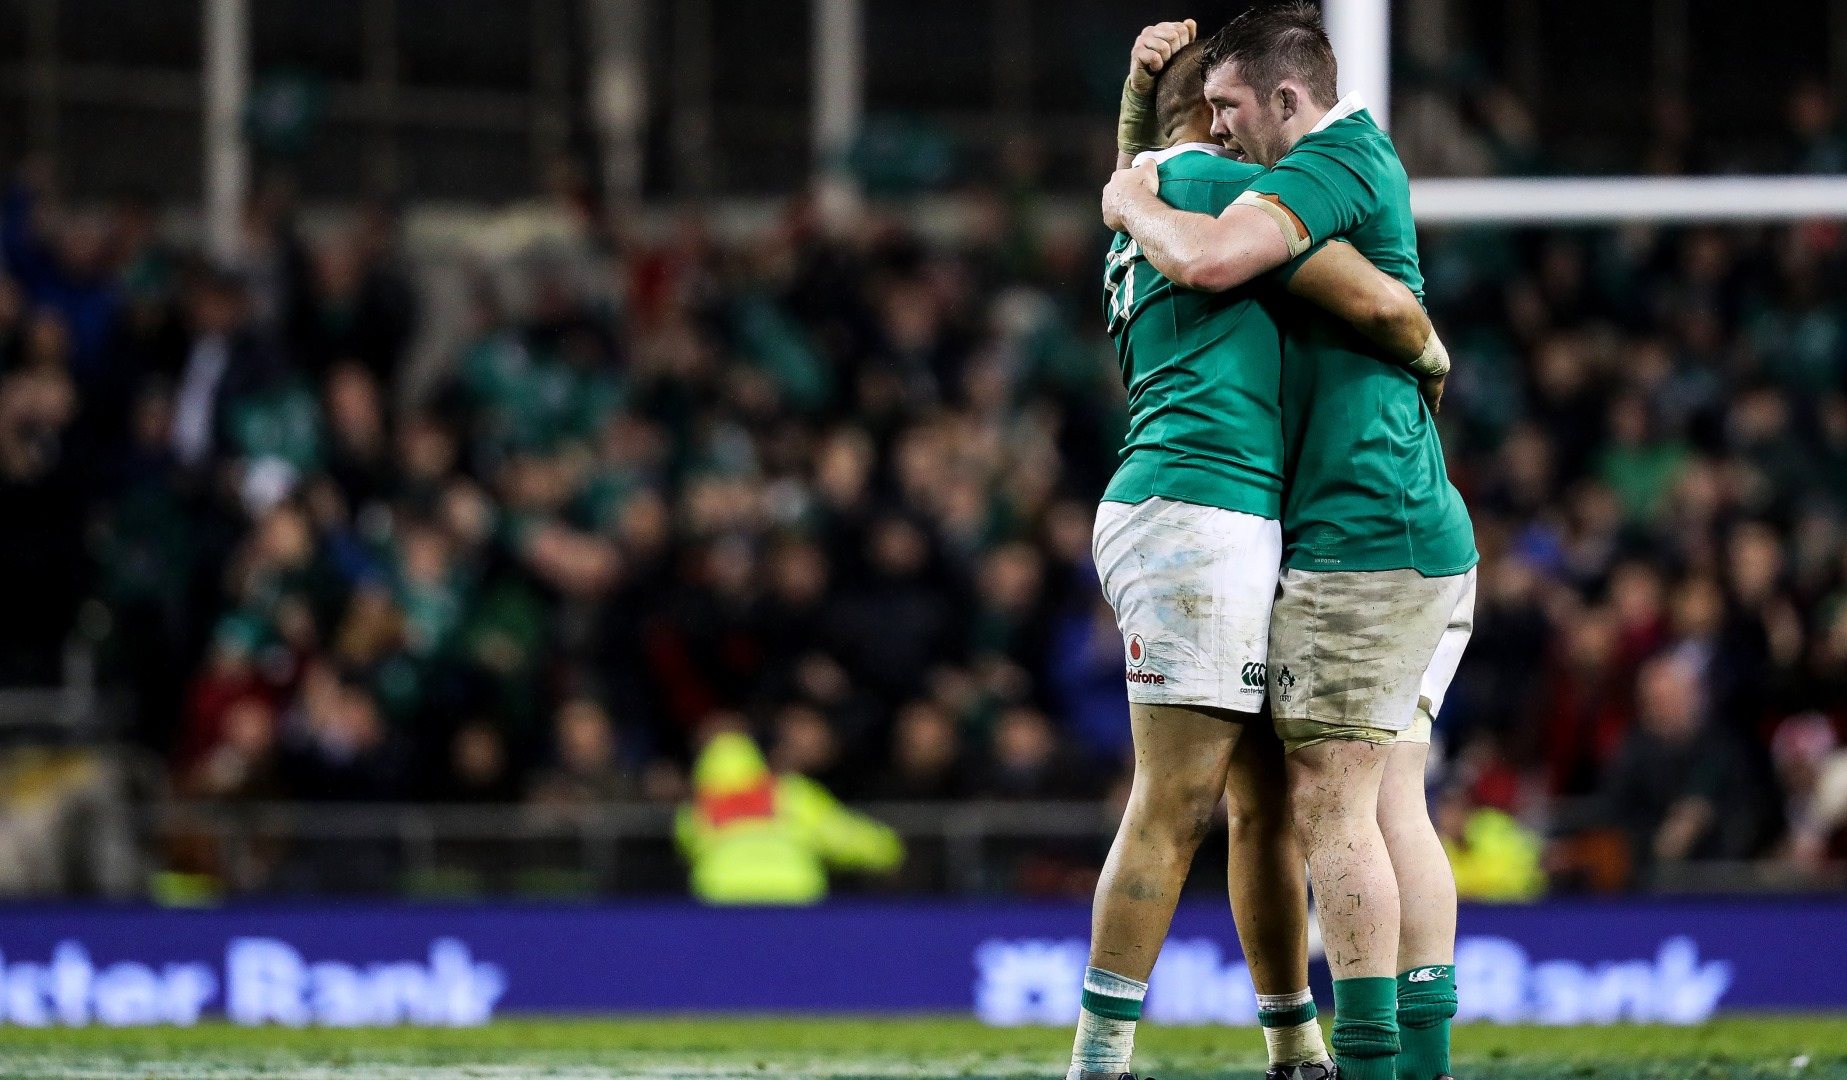 LionsWatch: Best pleased to see Ireland end on a high